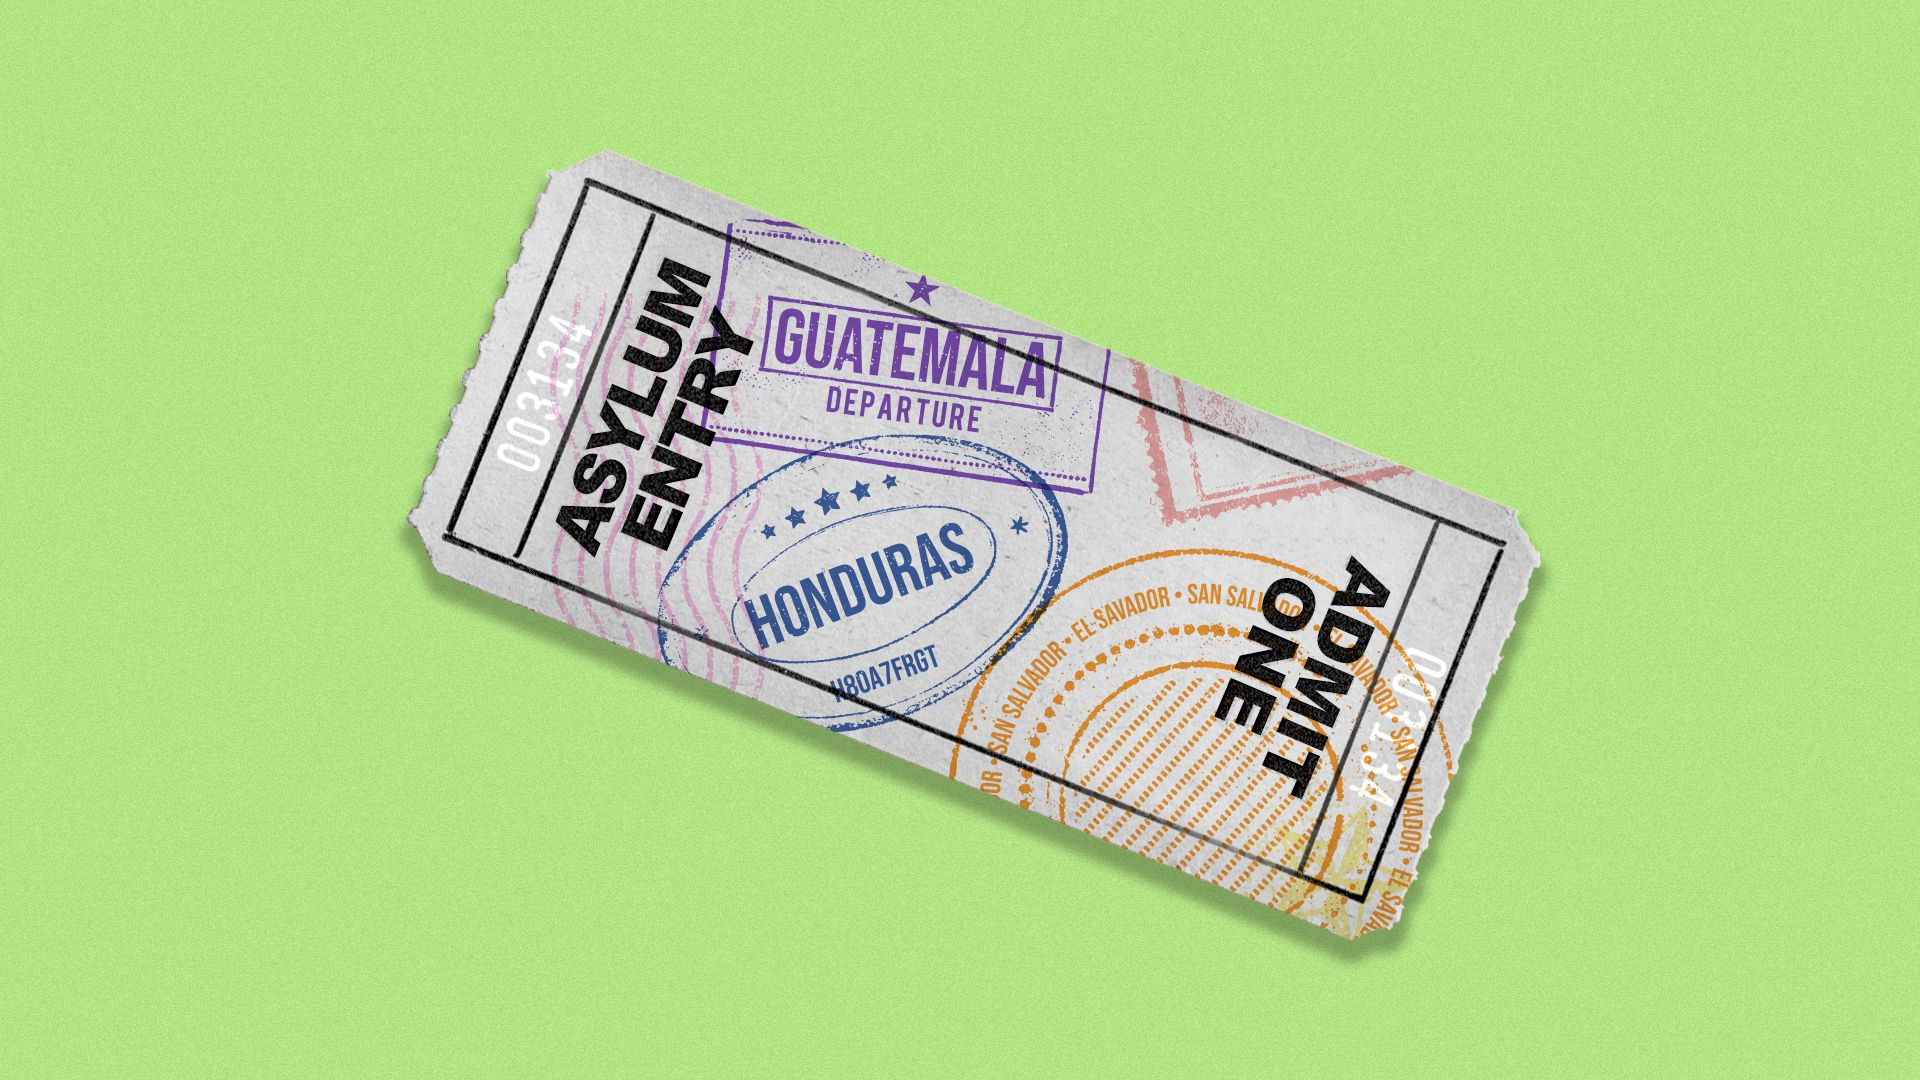 This is a metaphorical ticket for asylum, which immigrants in the migrant caravan are seeking